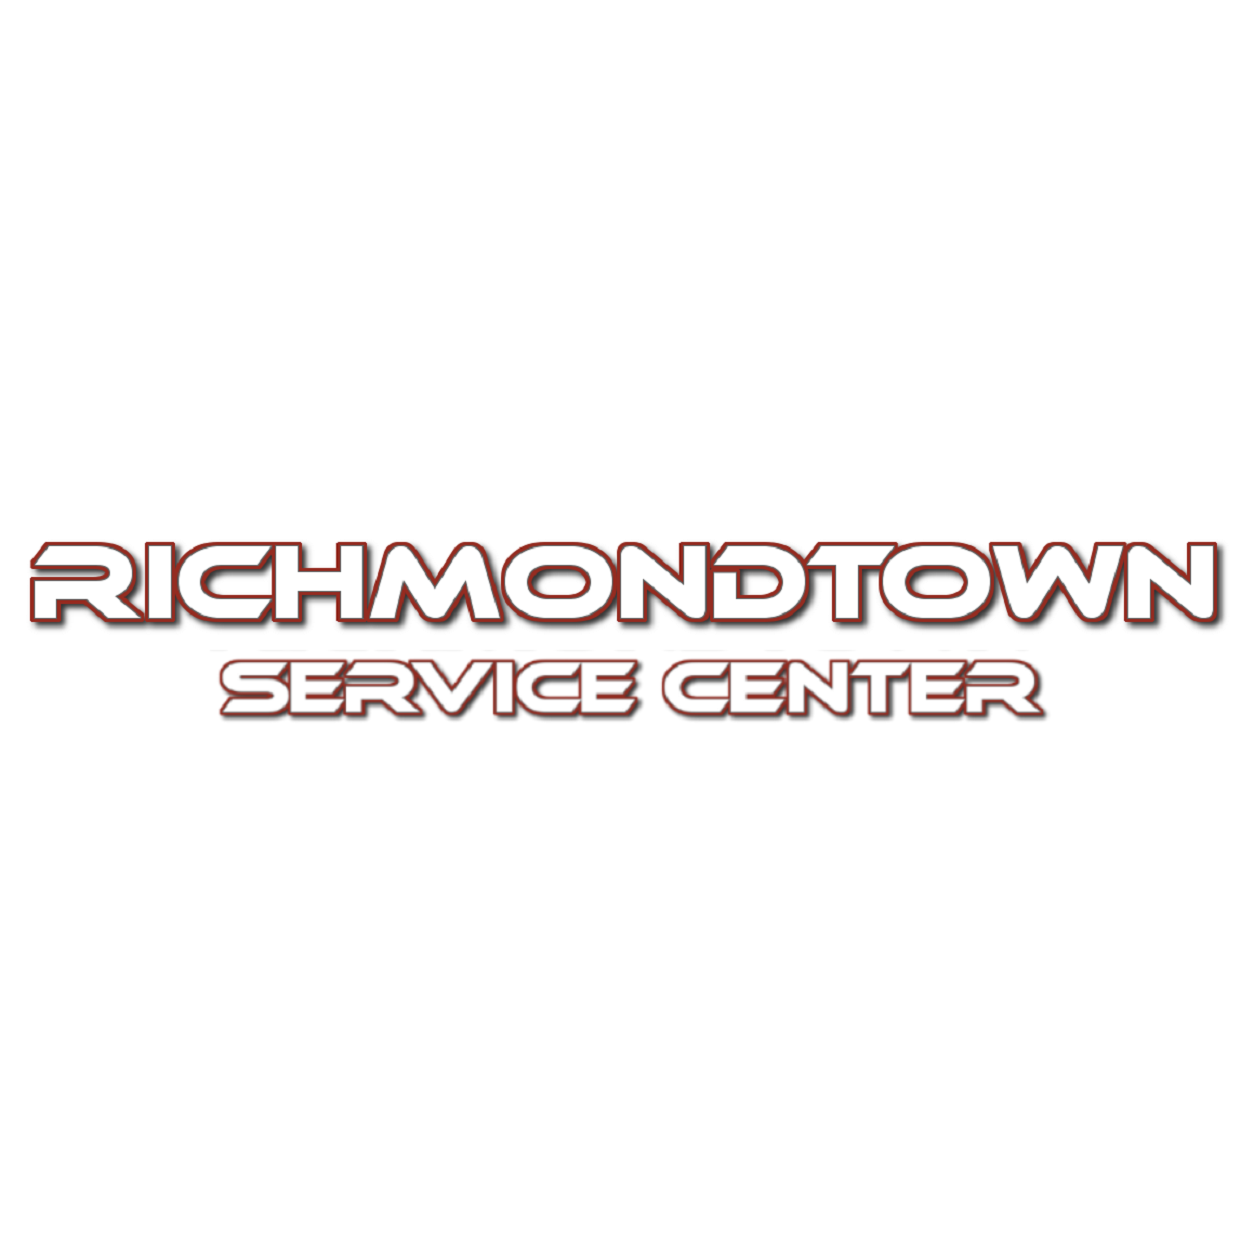 Richmondtown Service Center Inc